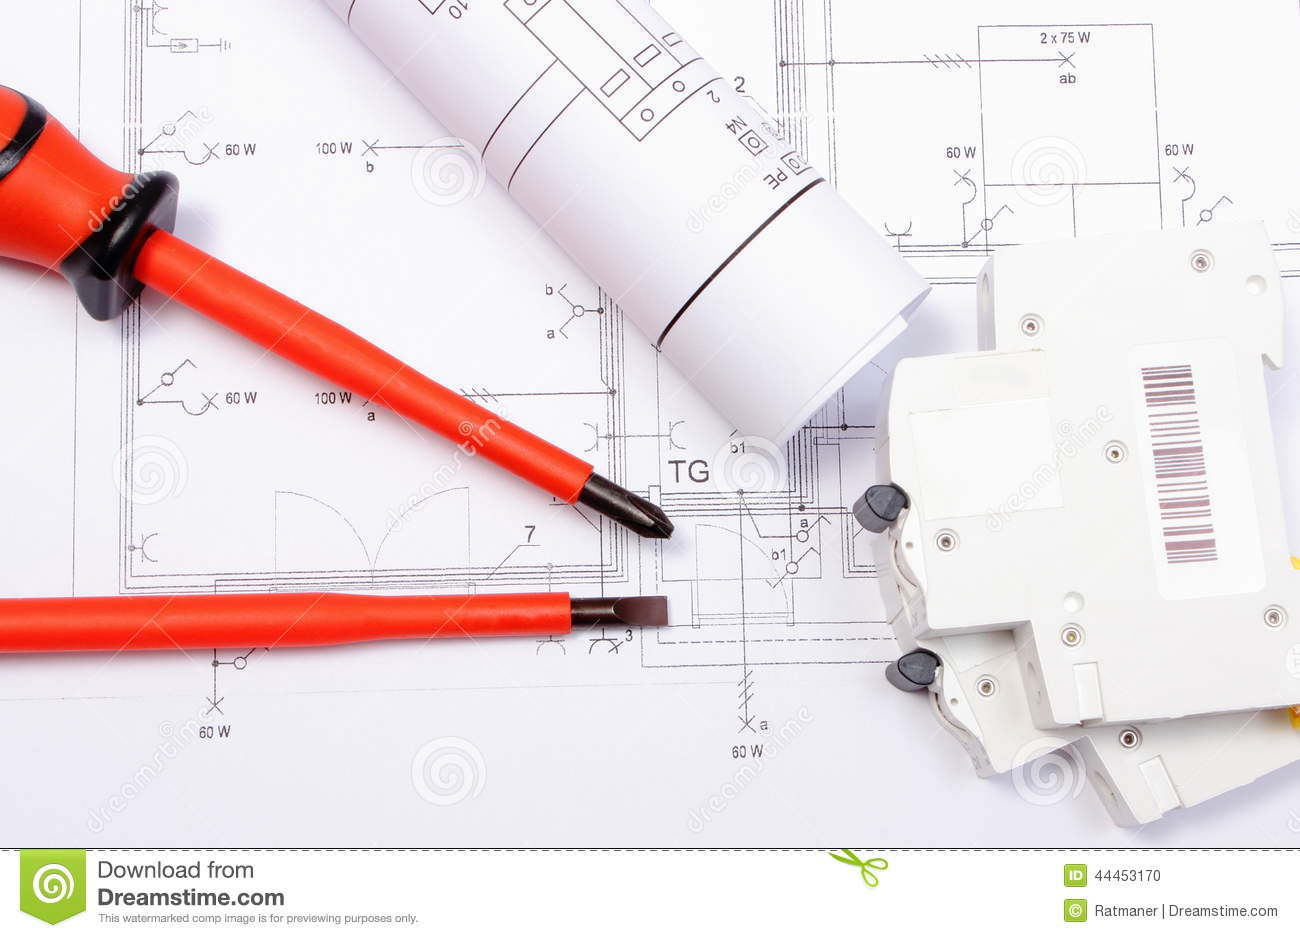 Electrical Diagrams Electric Fuse And Screwdrivers On Construction Drawing In House Of